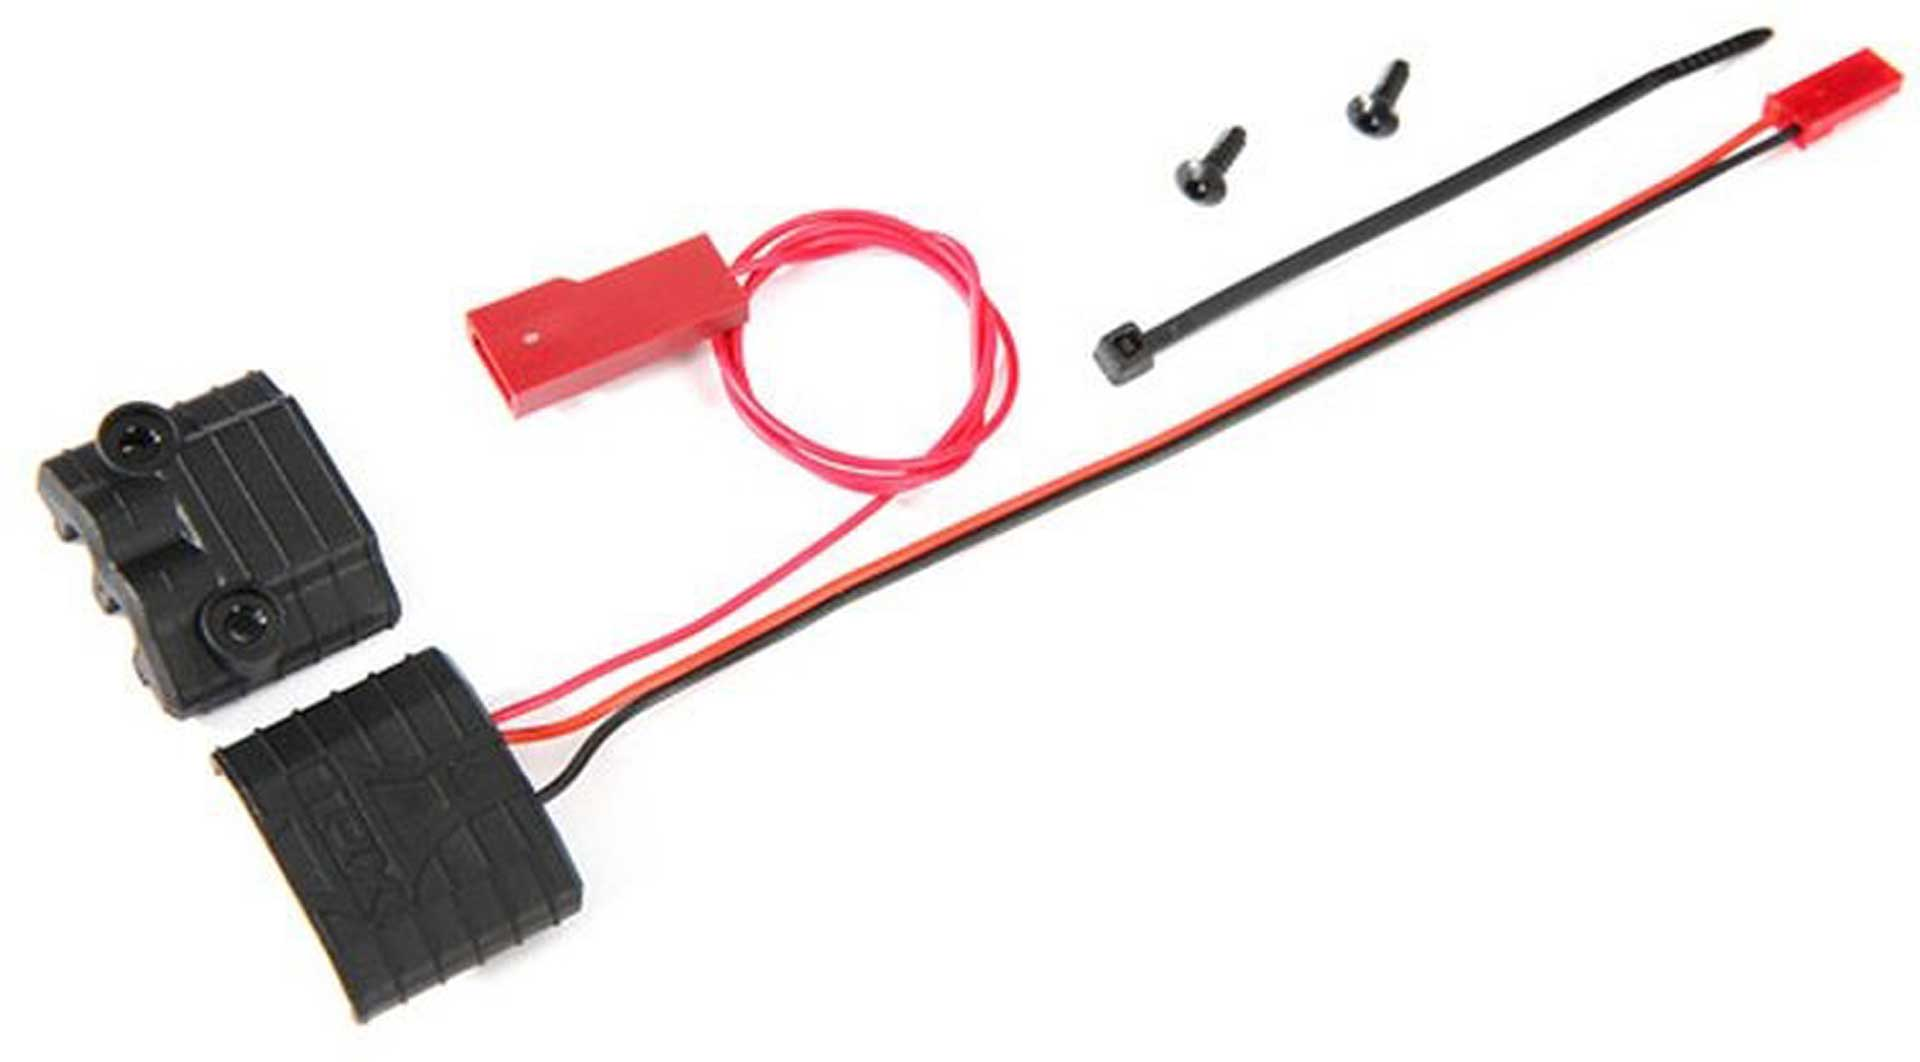 TRAXXAS INTERMEDIATE PLUG FOR LIGHT KIT WITH VOLTAGE SENSOR CONNECTION